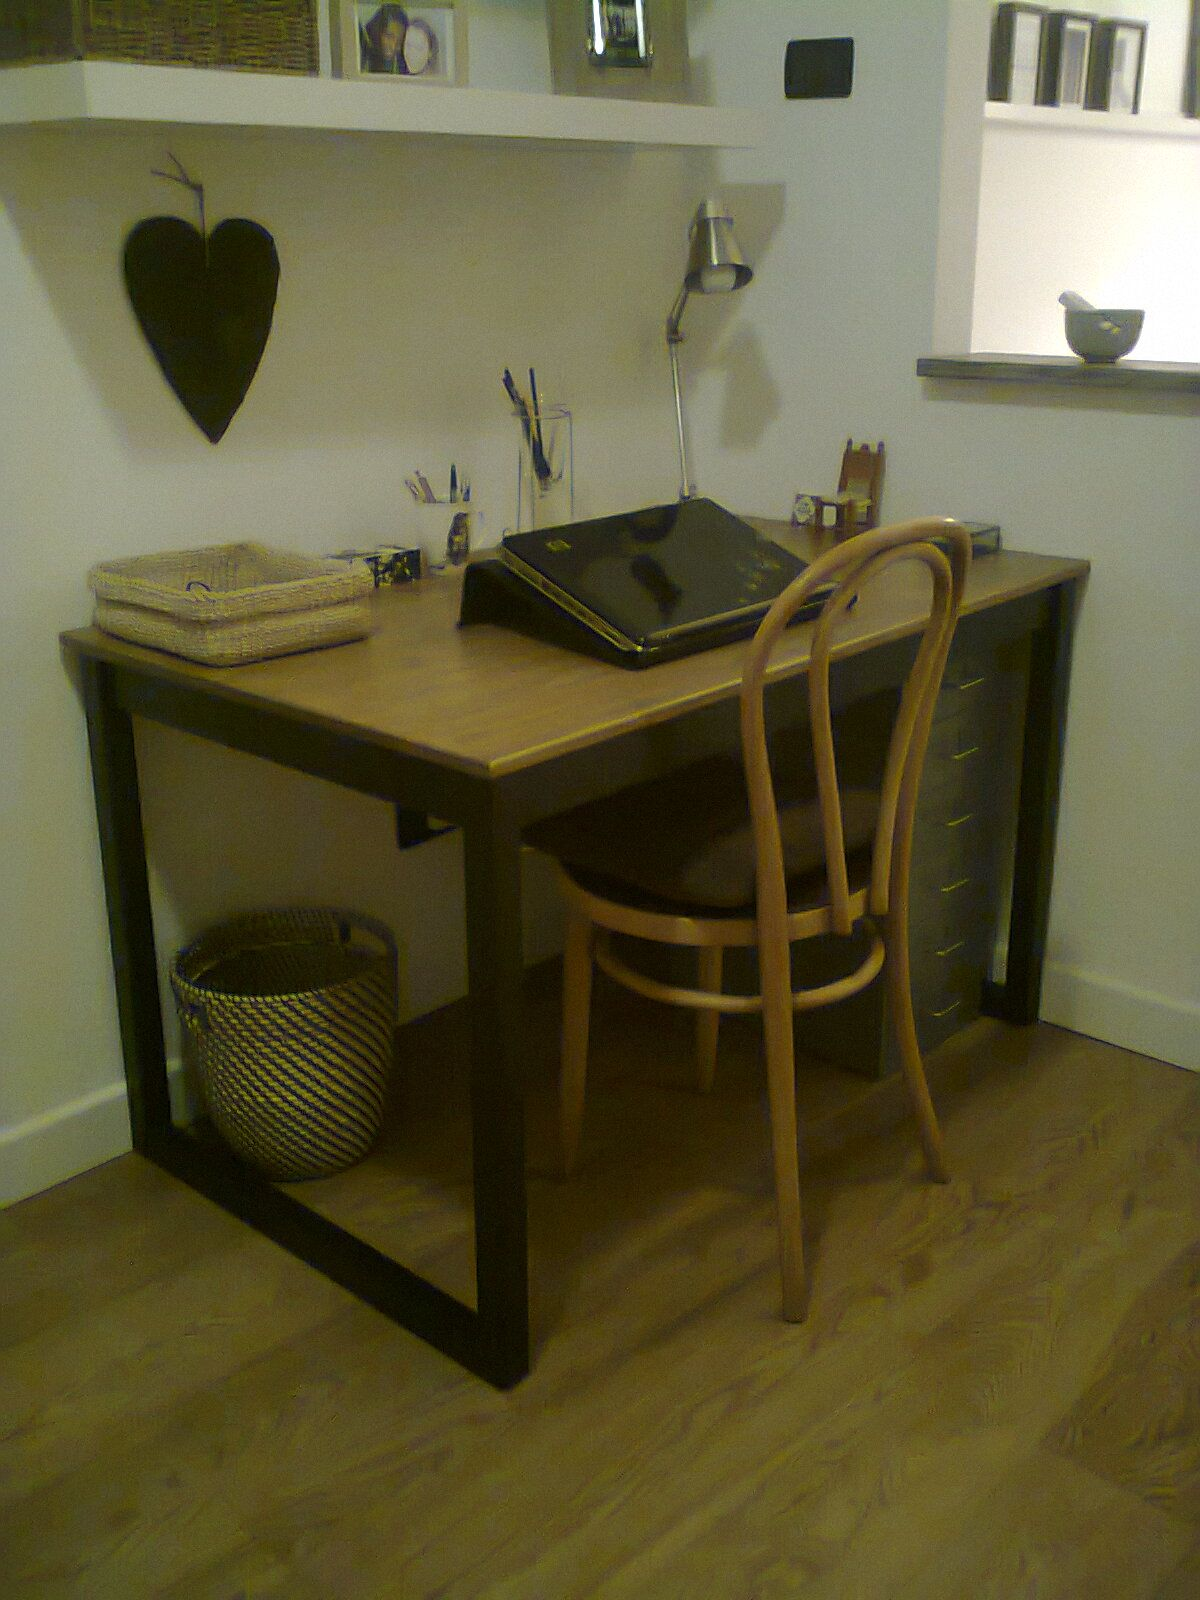 Simple Ikea Ingo table be es a desk